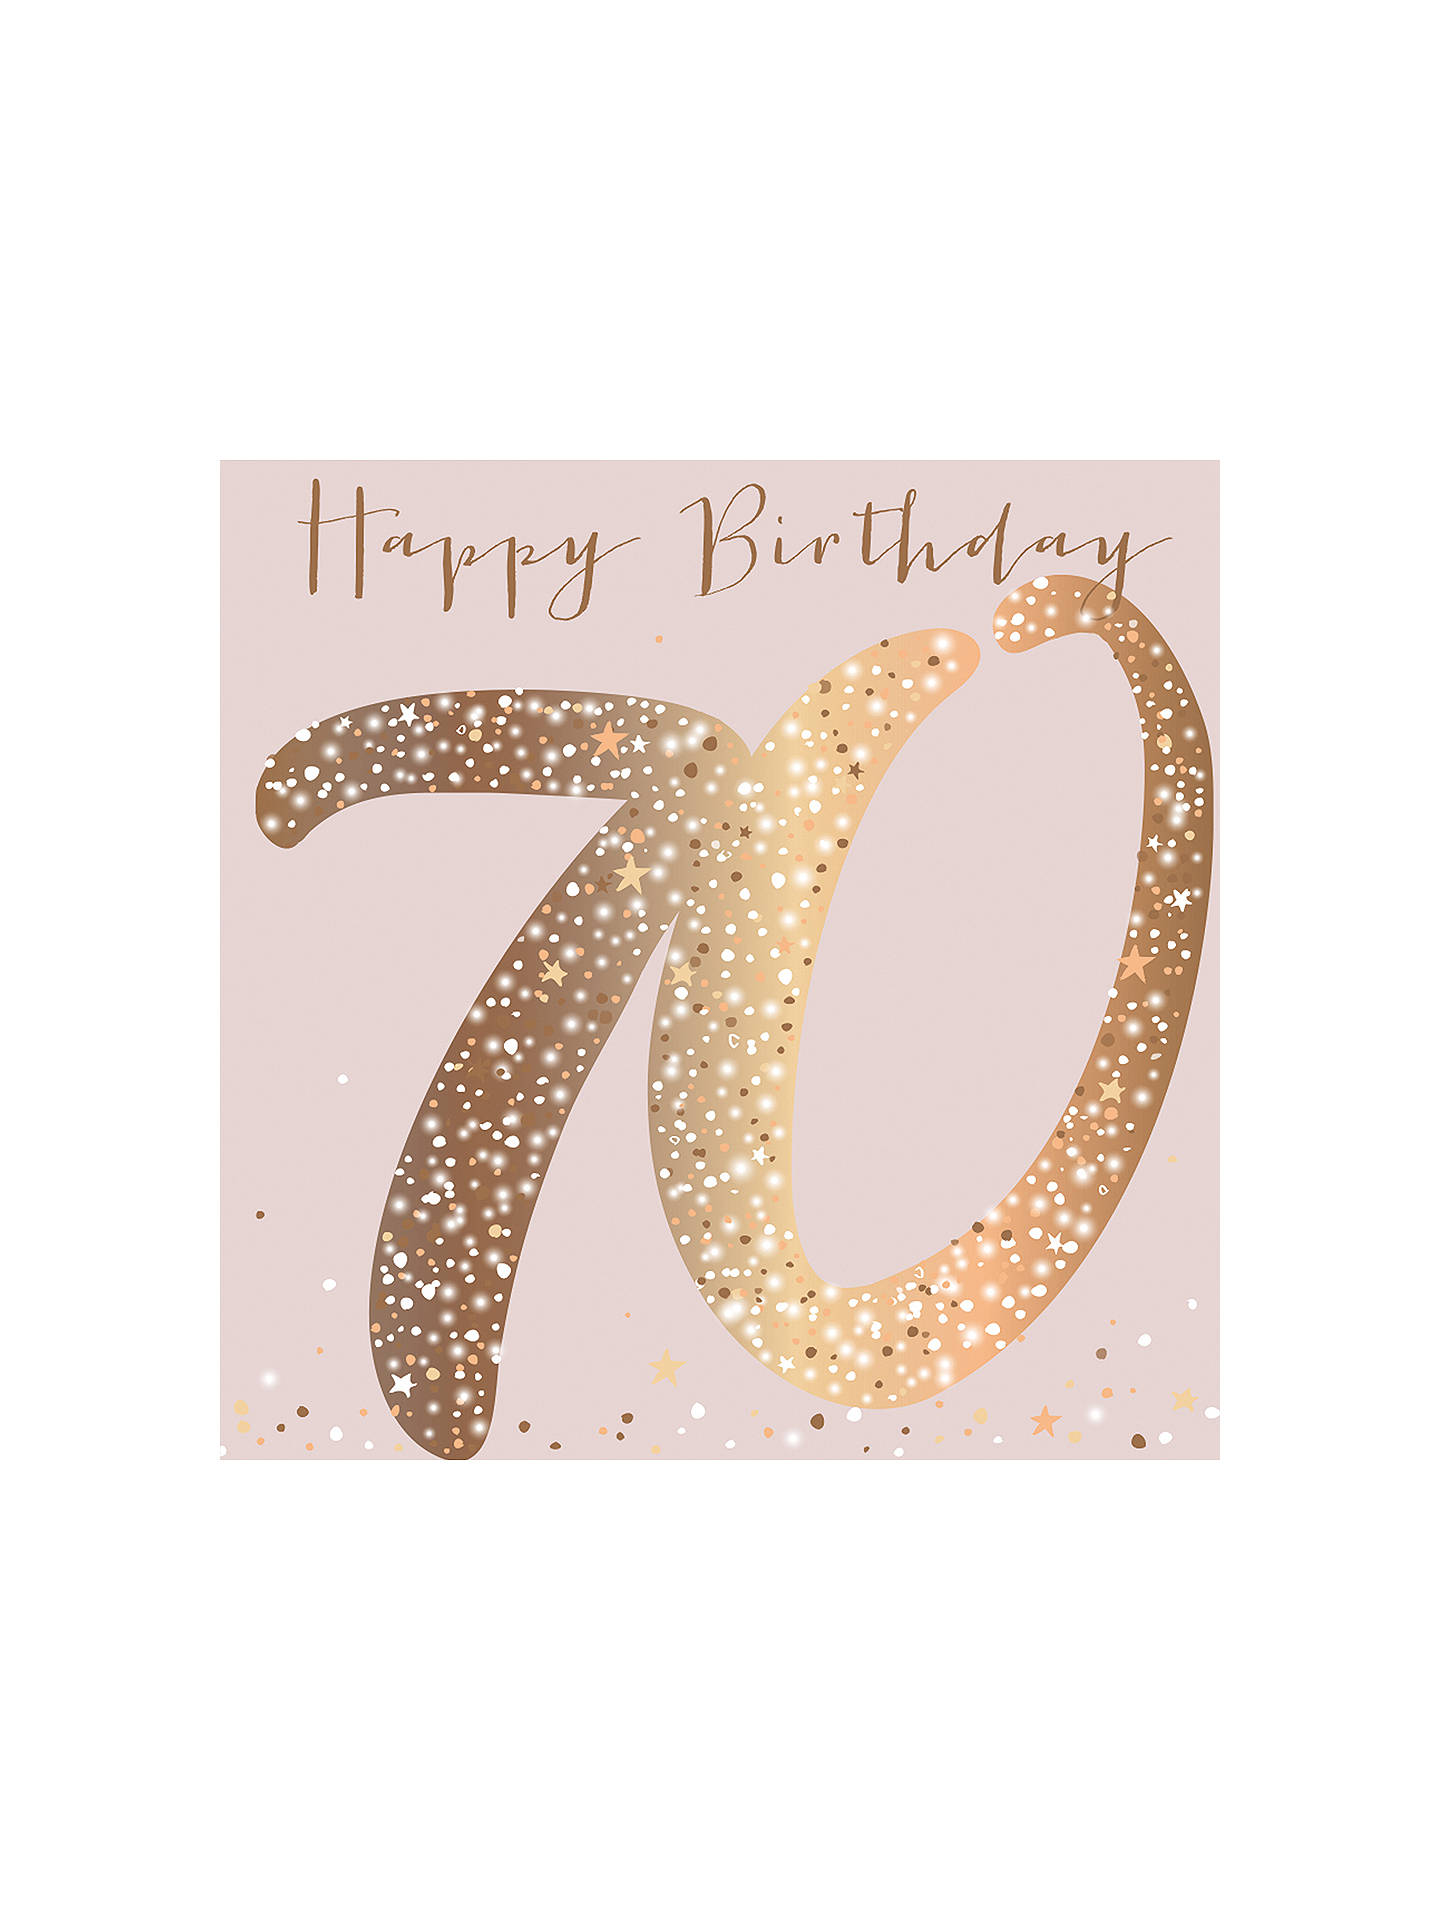 Belly Button Designs 70th Birthday Card